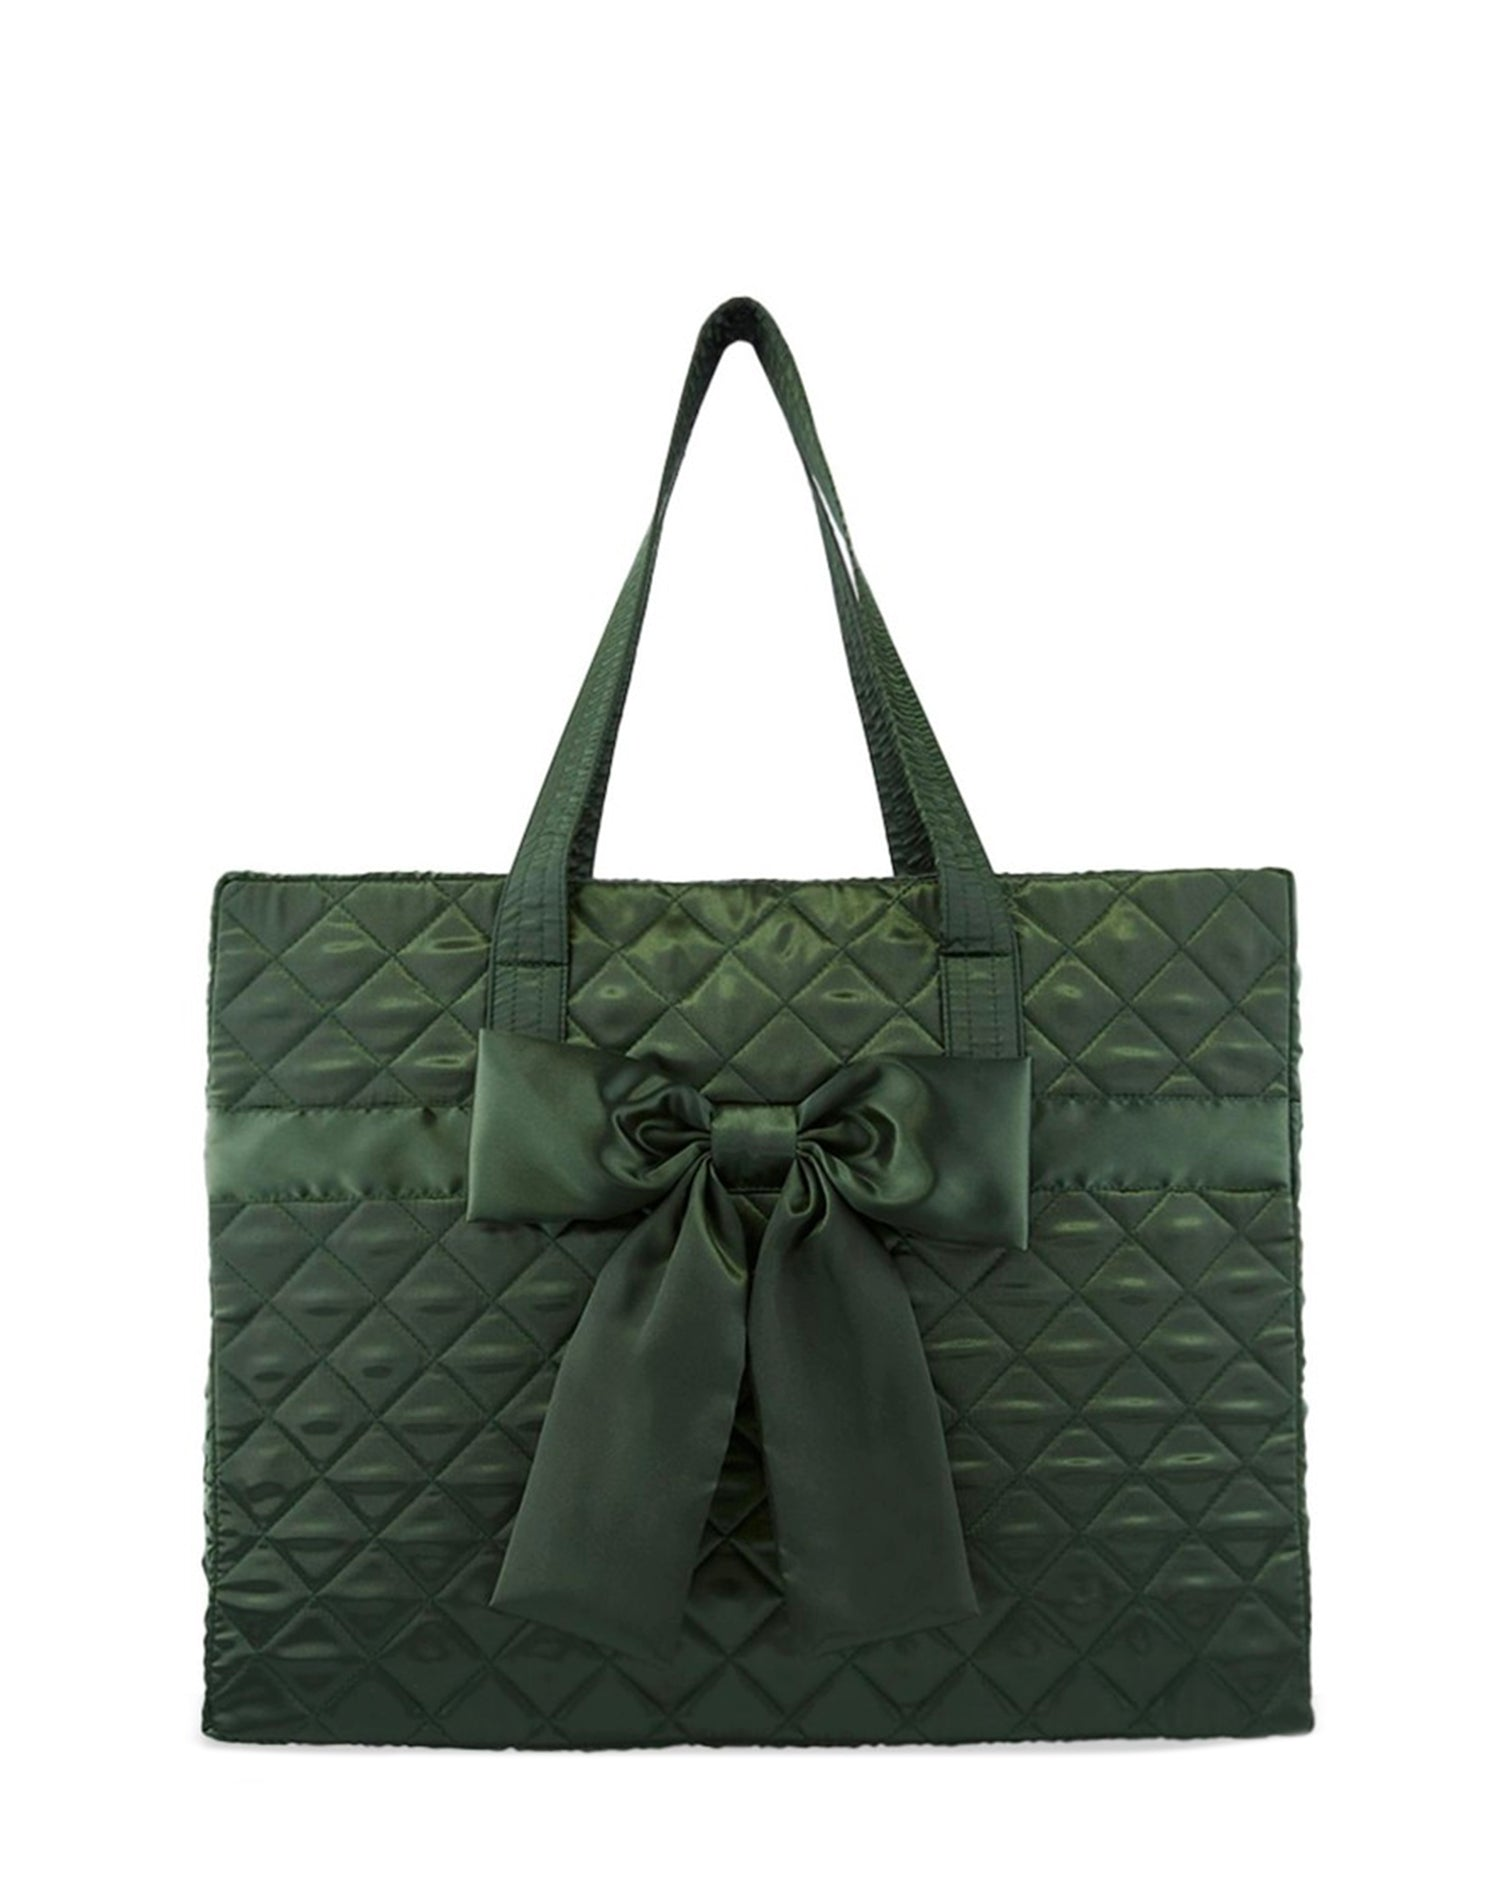 Deep Green Satin Quilted Tote Bag.深綠色缎布側背袋